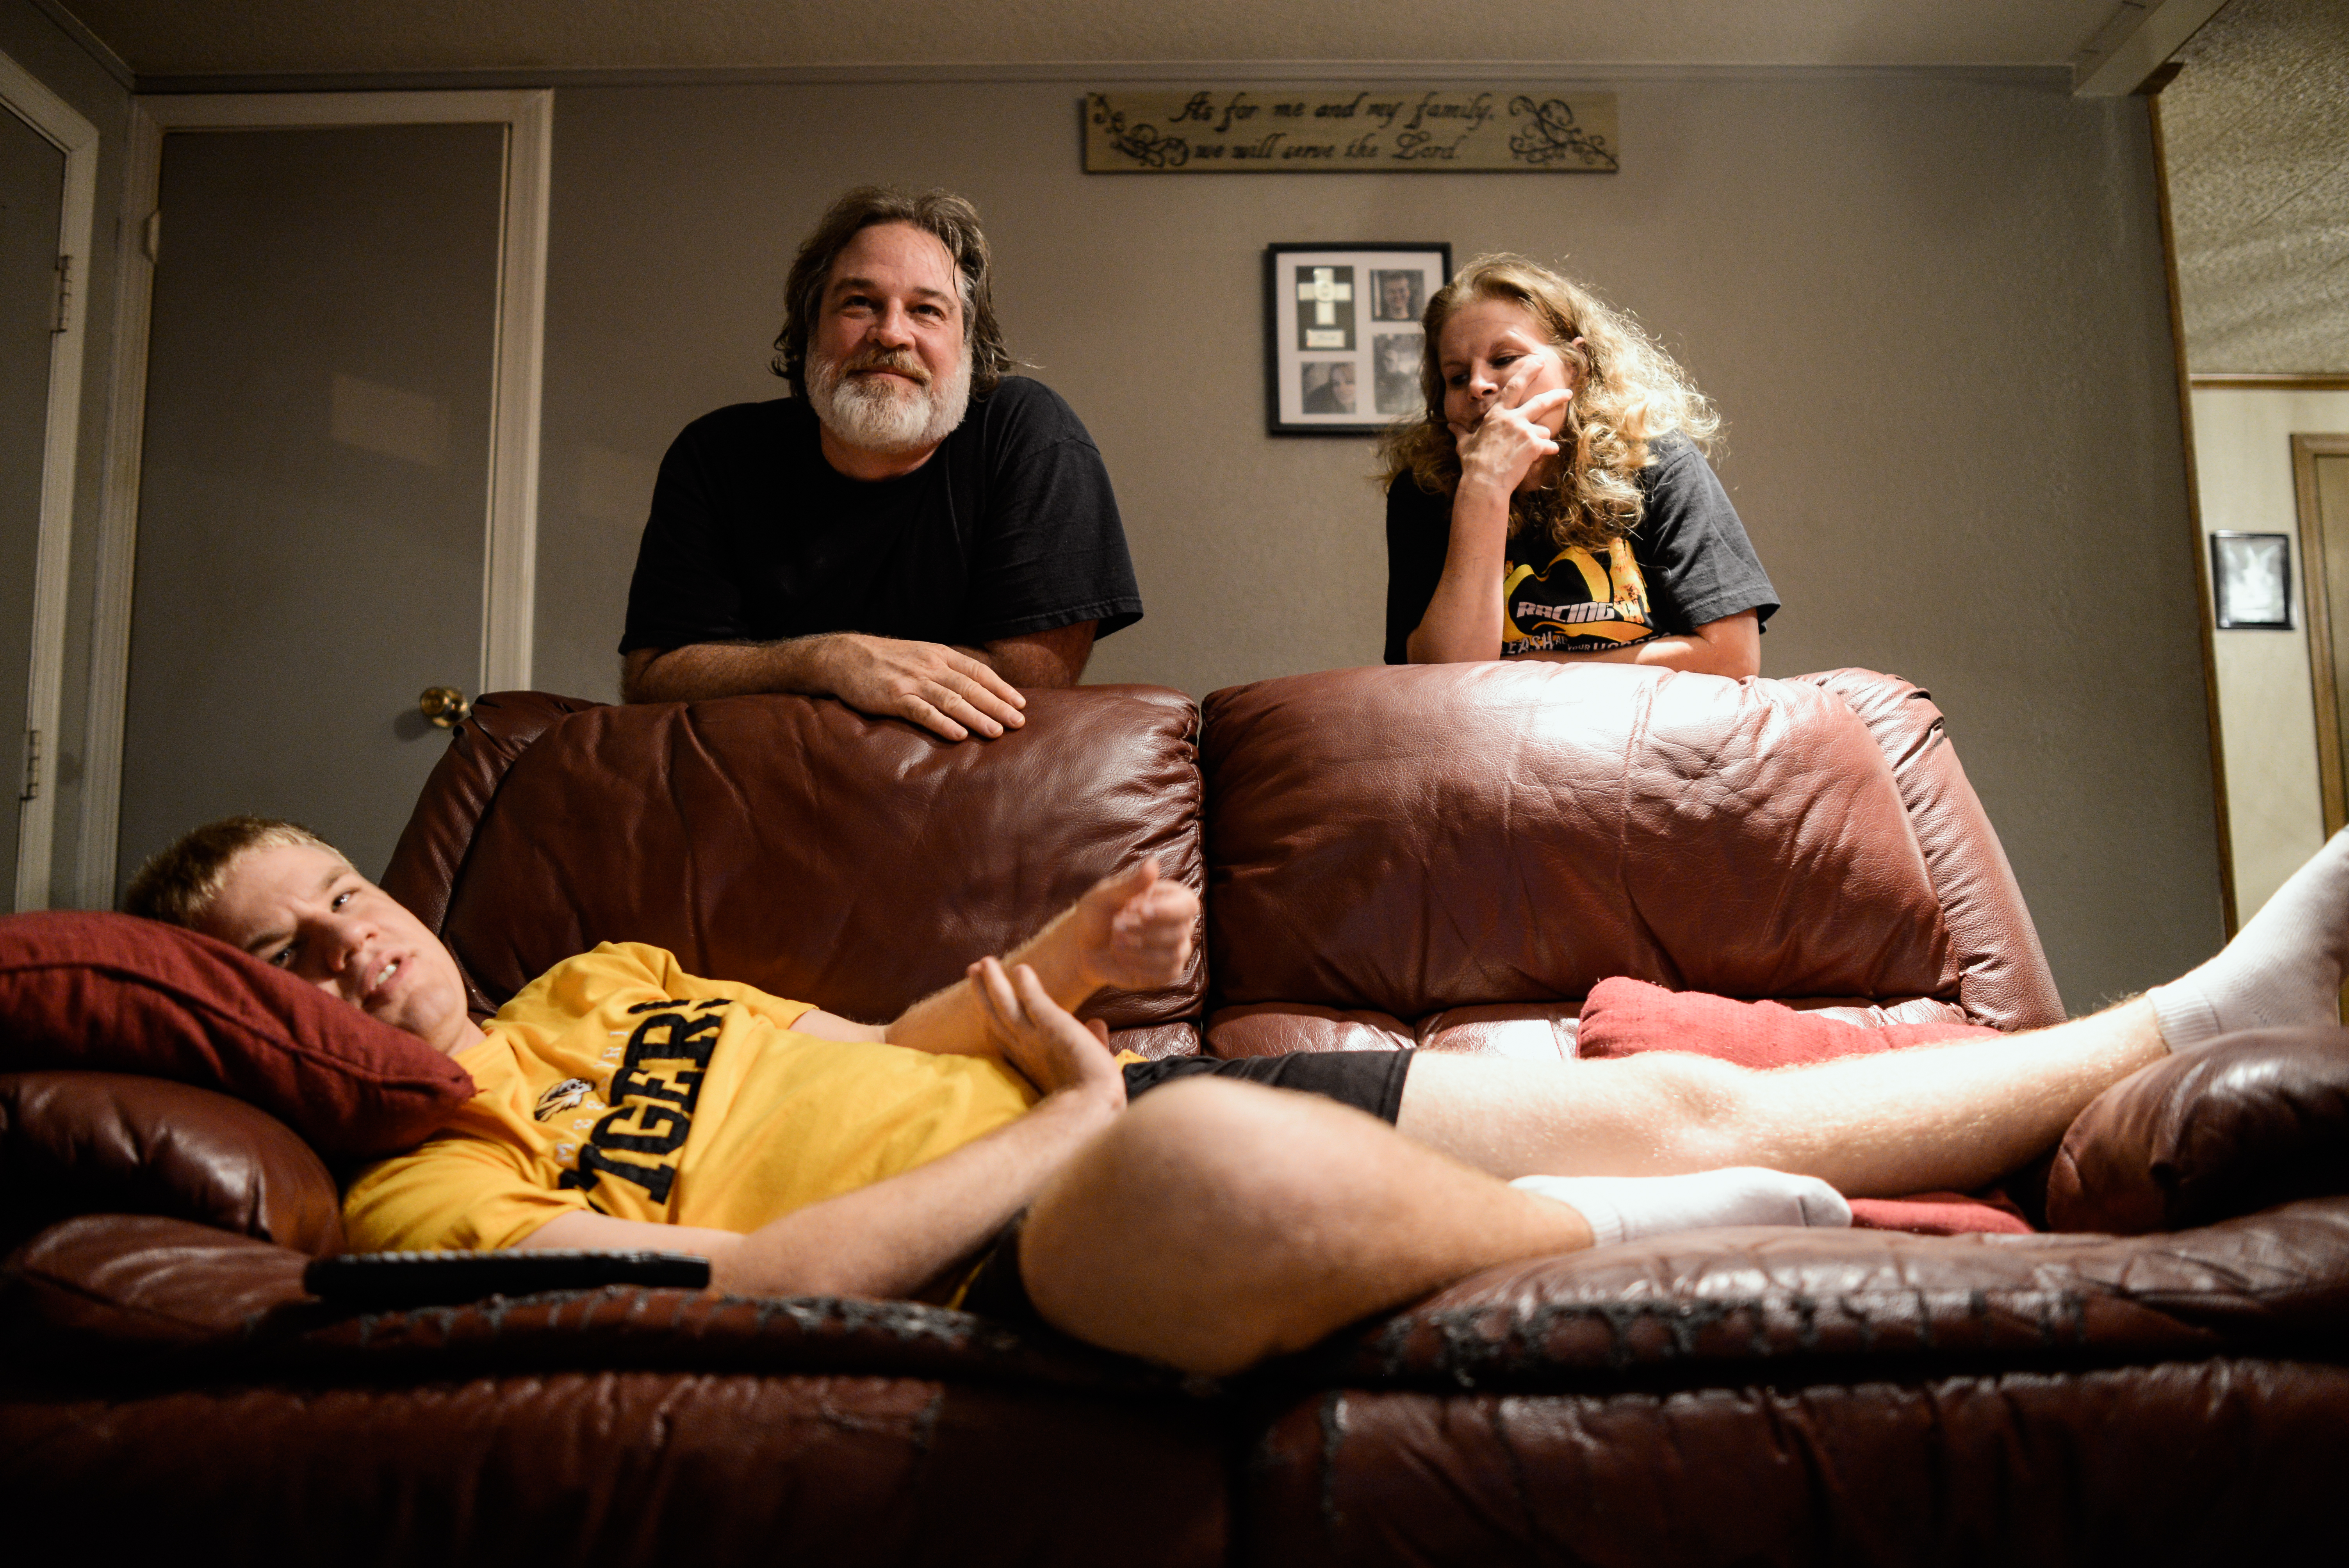 Trenton, Missouri. 2013.  A nightly ritual, Dalton and his parents, Casey and Joyce, spend some time together watching television.